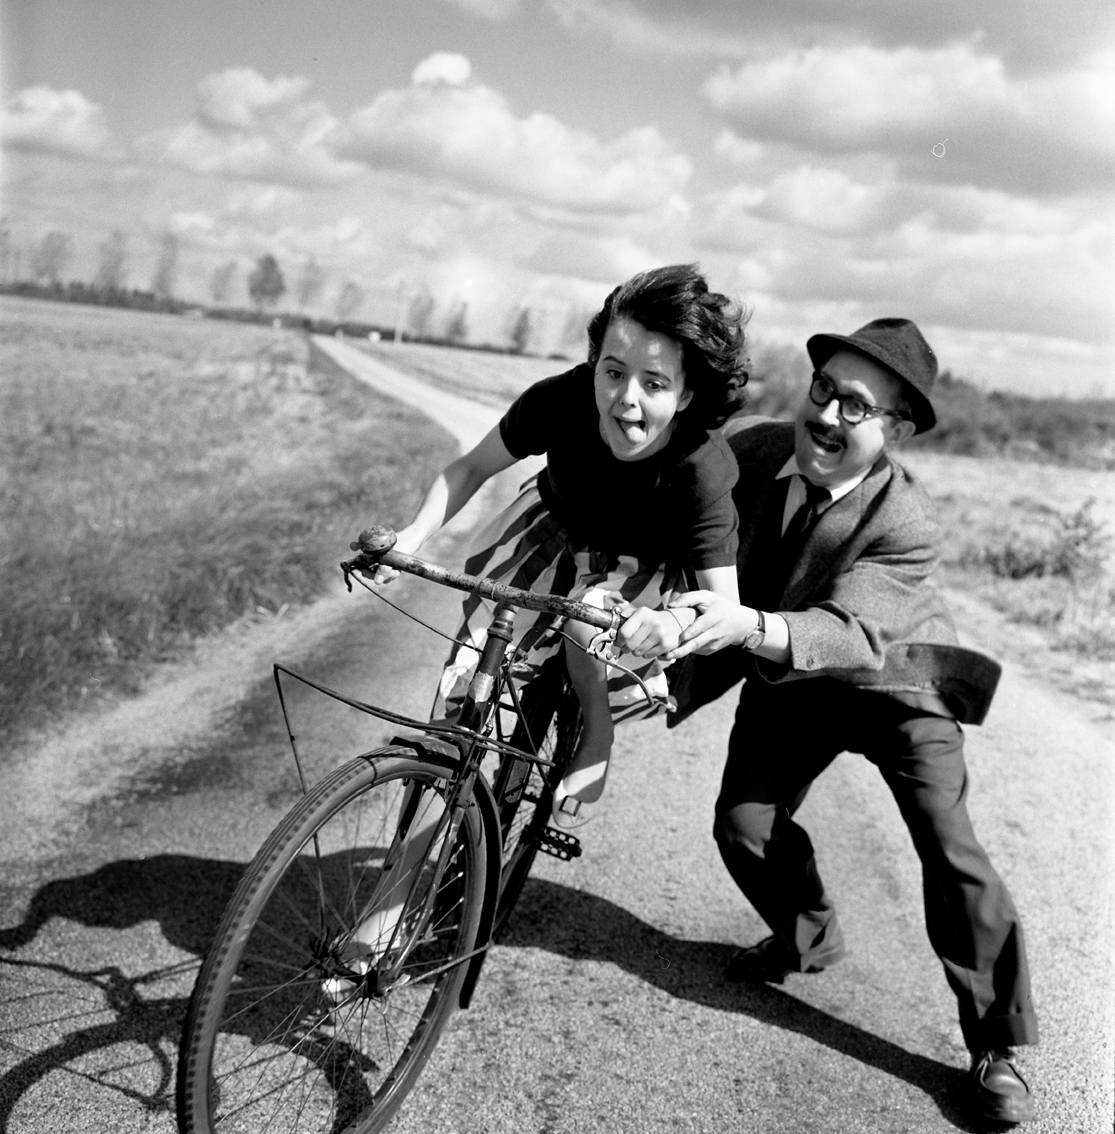 Robert Doisneau - Bike lesson